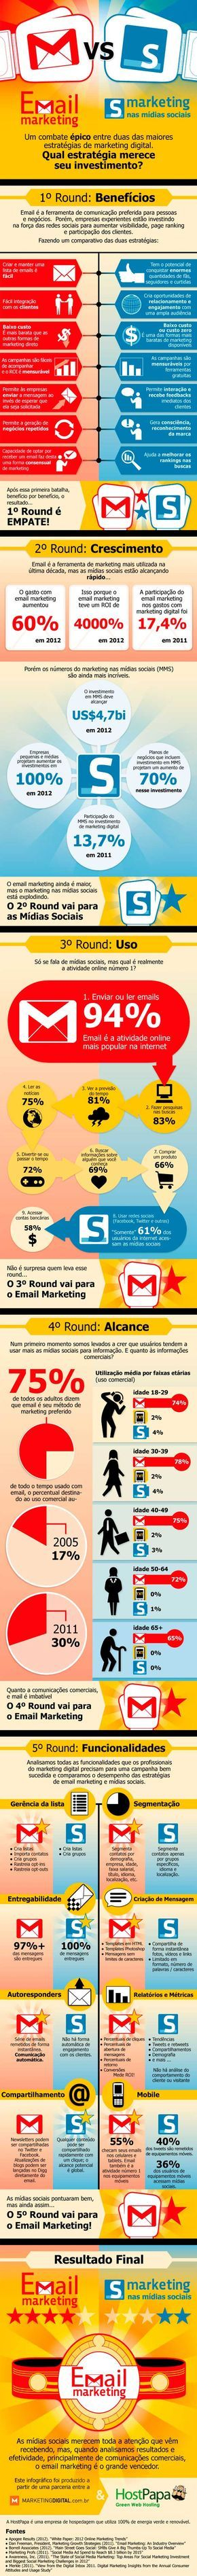 E-mail Marketing ou Marketing nas Mídias Sociais?